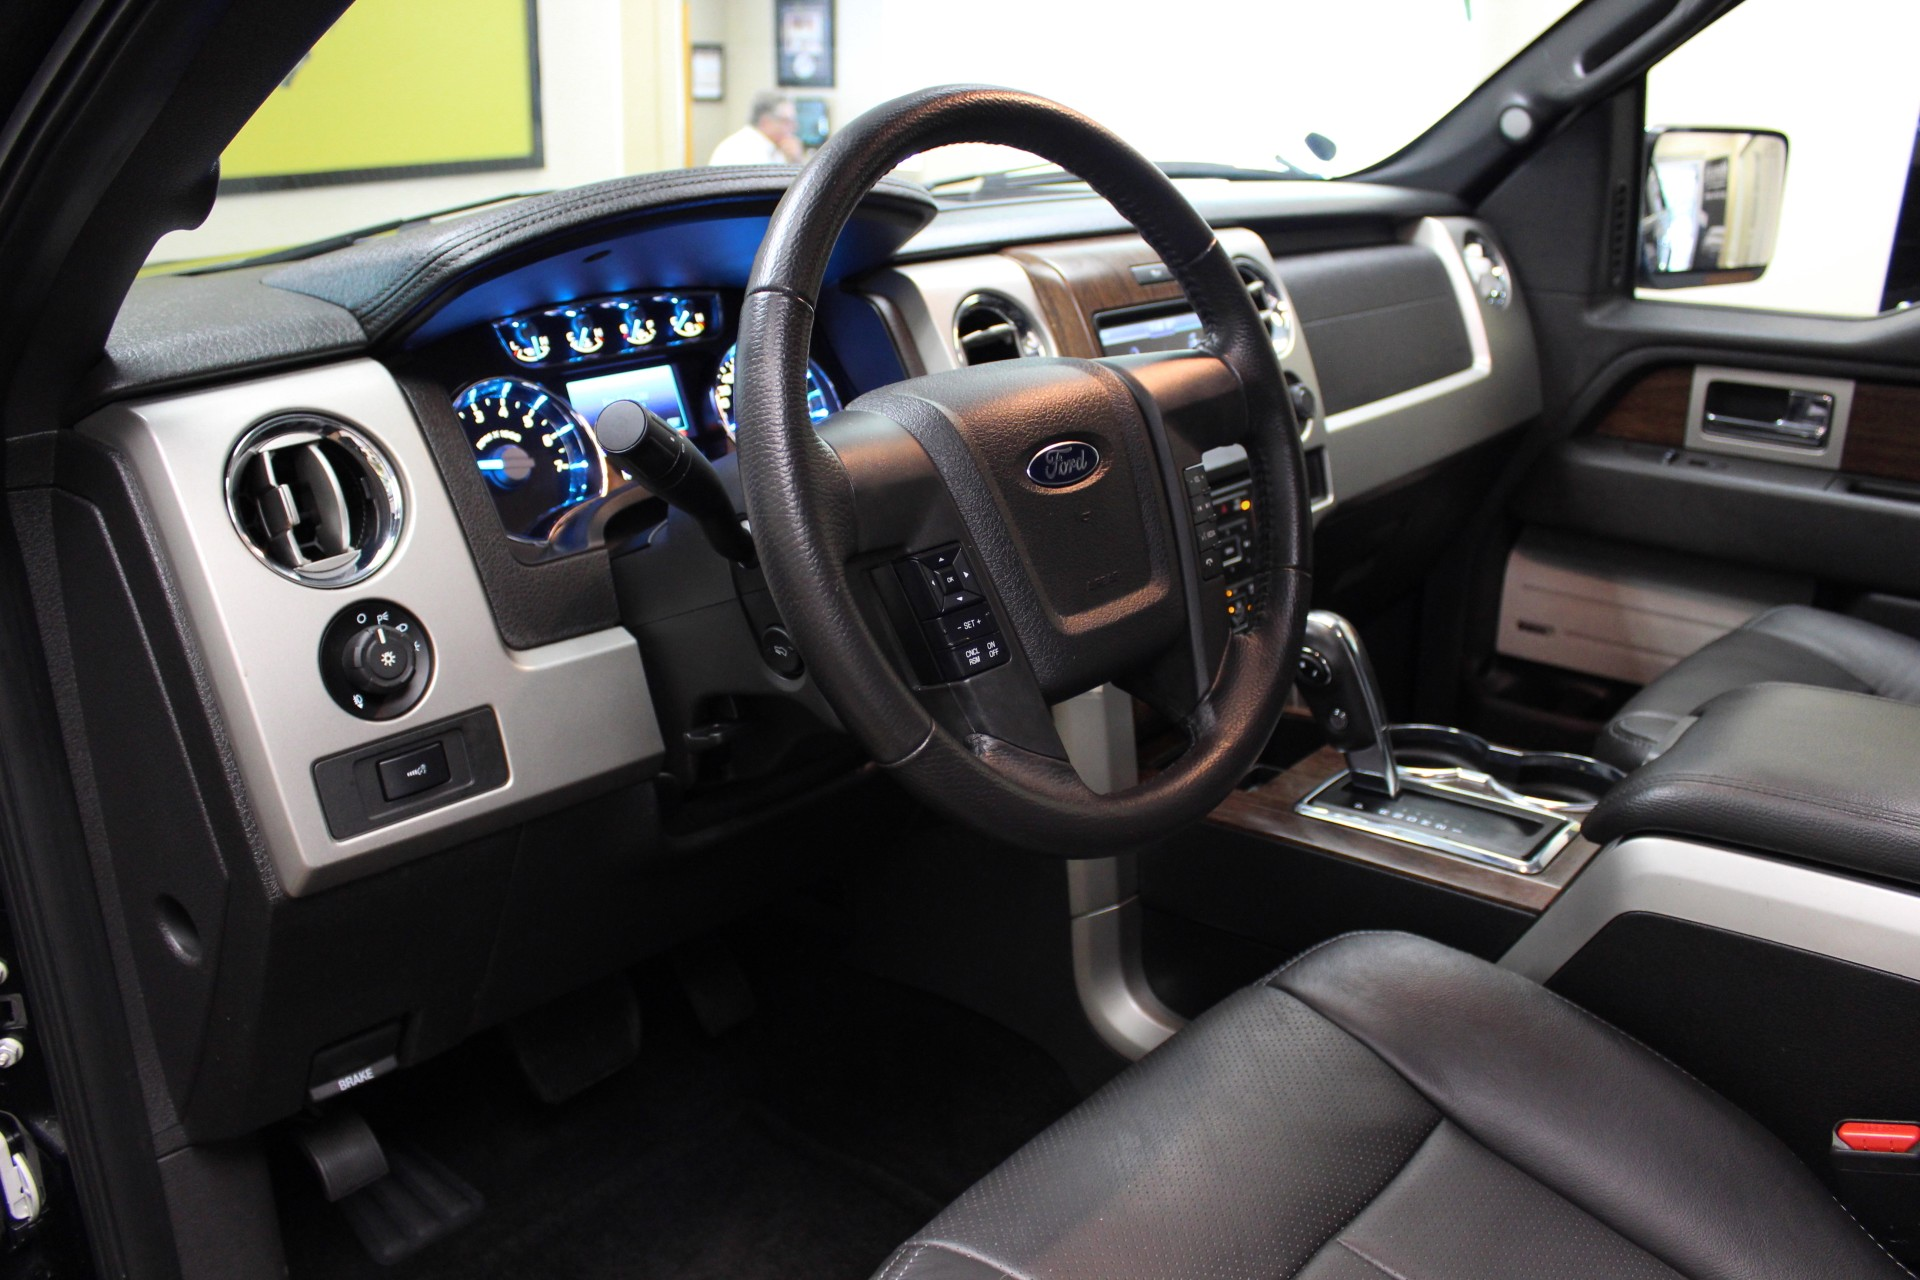 Ford F150 Garage Door Opener 2018 2019 2020 Ford Cars